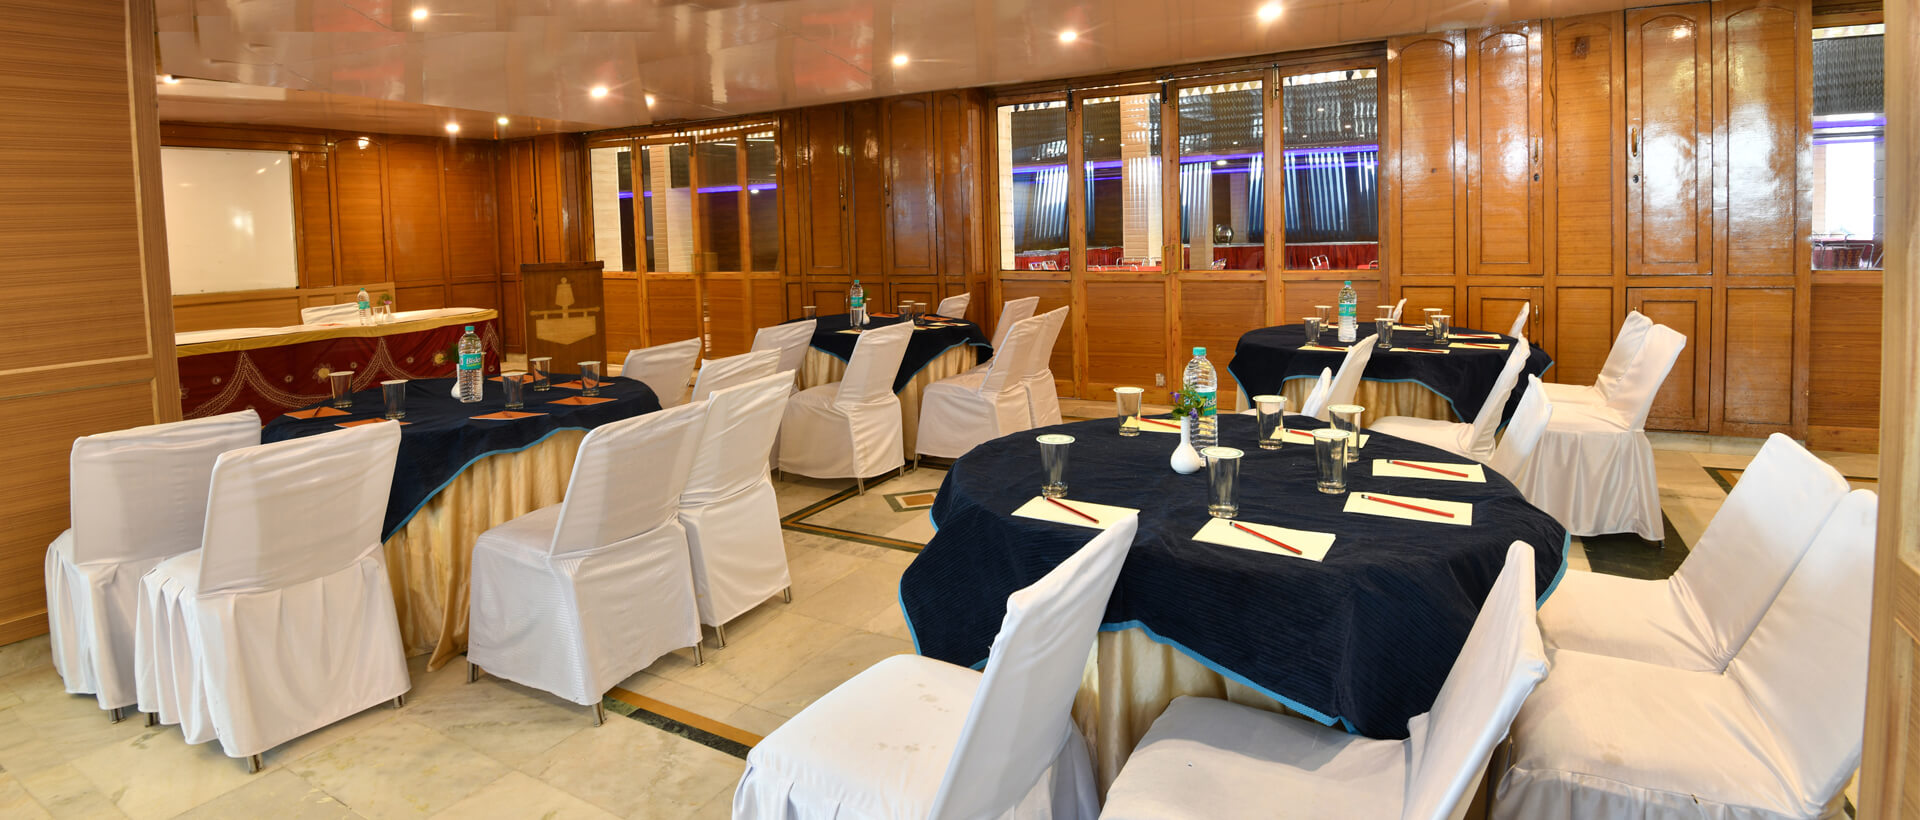 Dynasty Resort Business Meeting room